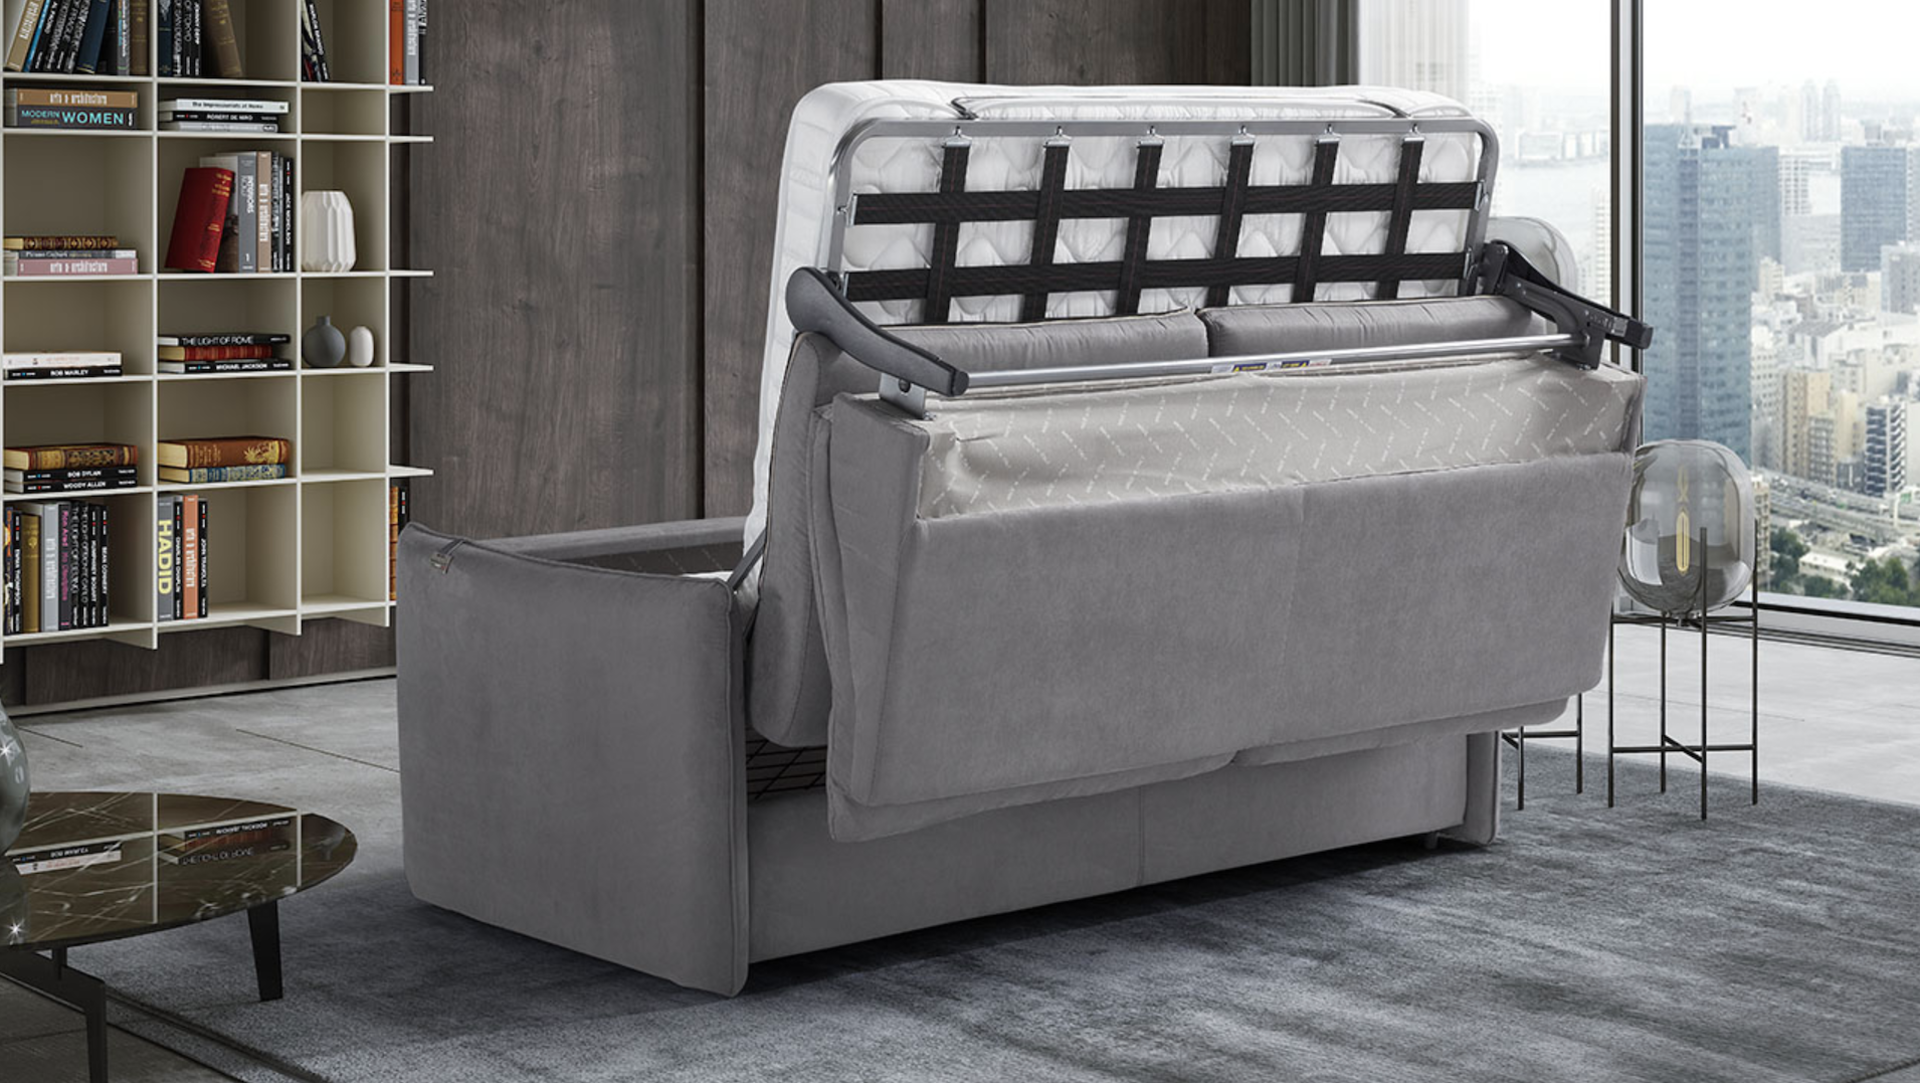 'AIMEE' Italian Crafted 3 Seat Sofa Bed in PLAZA GREY. RRP £1979 - Image 3 of 5